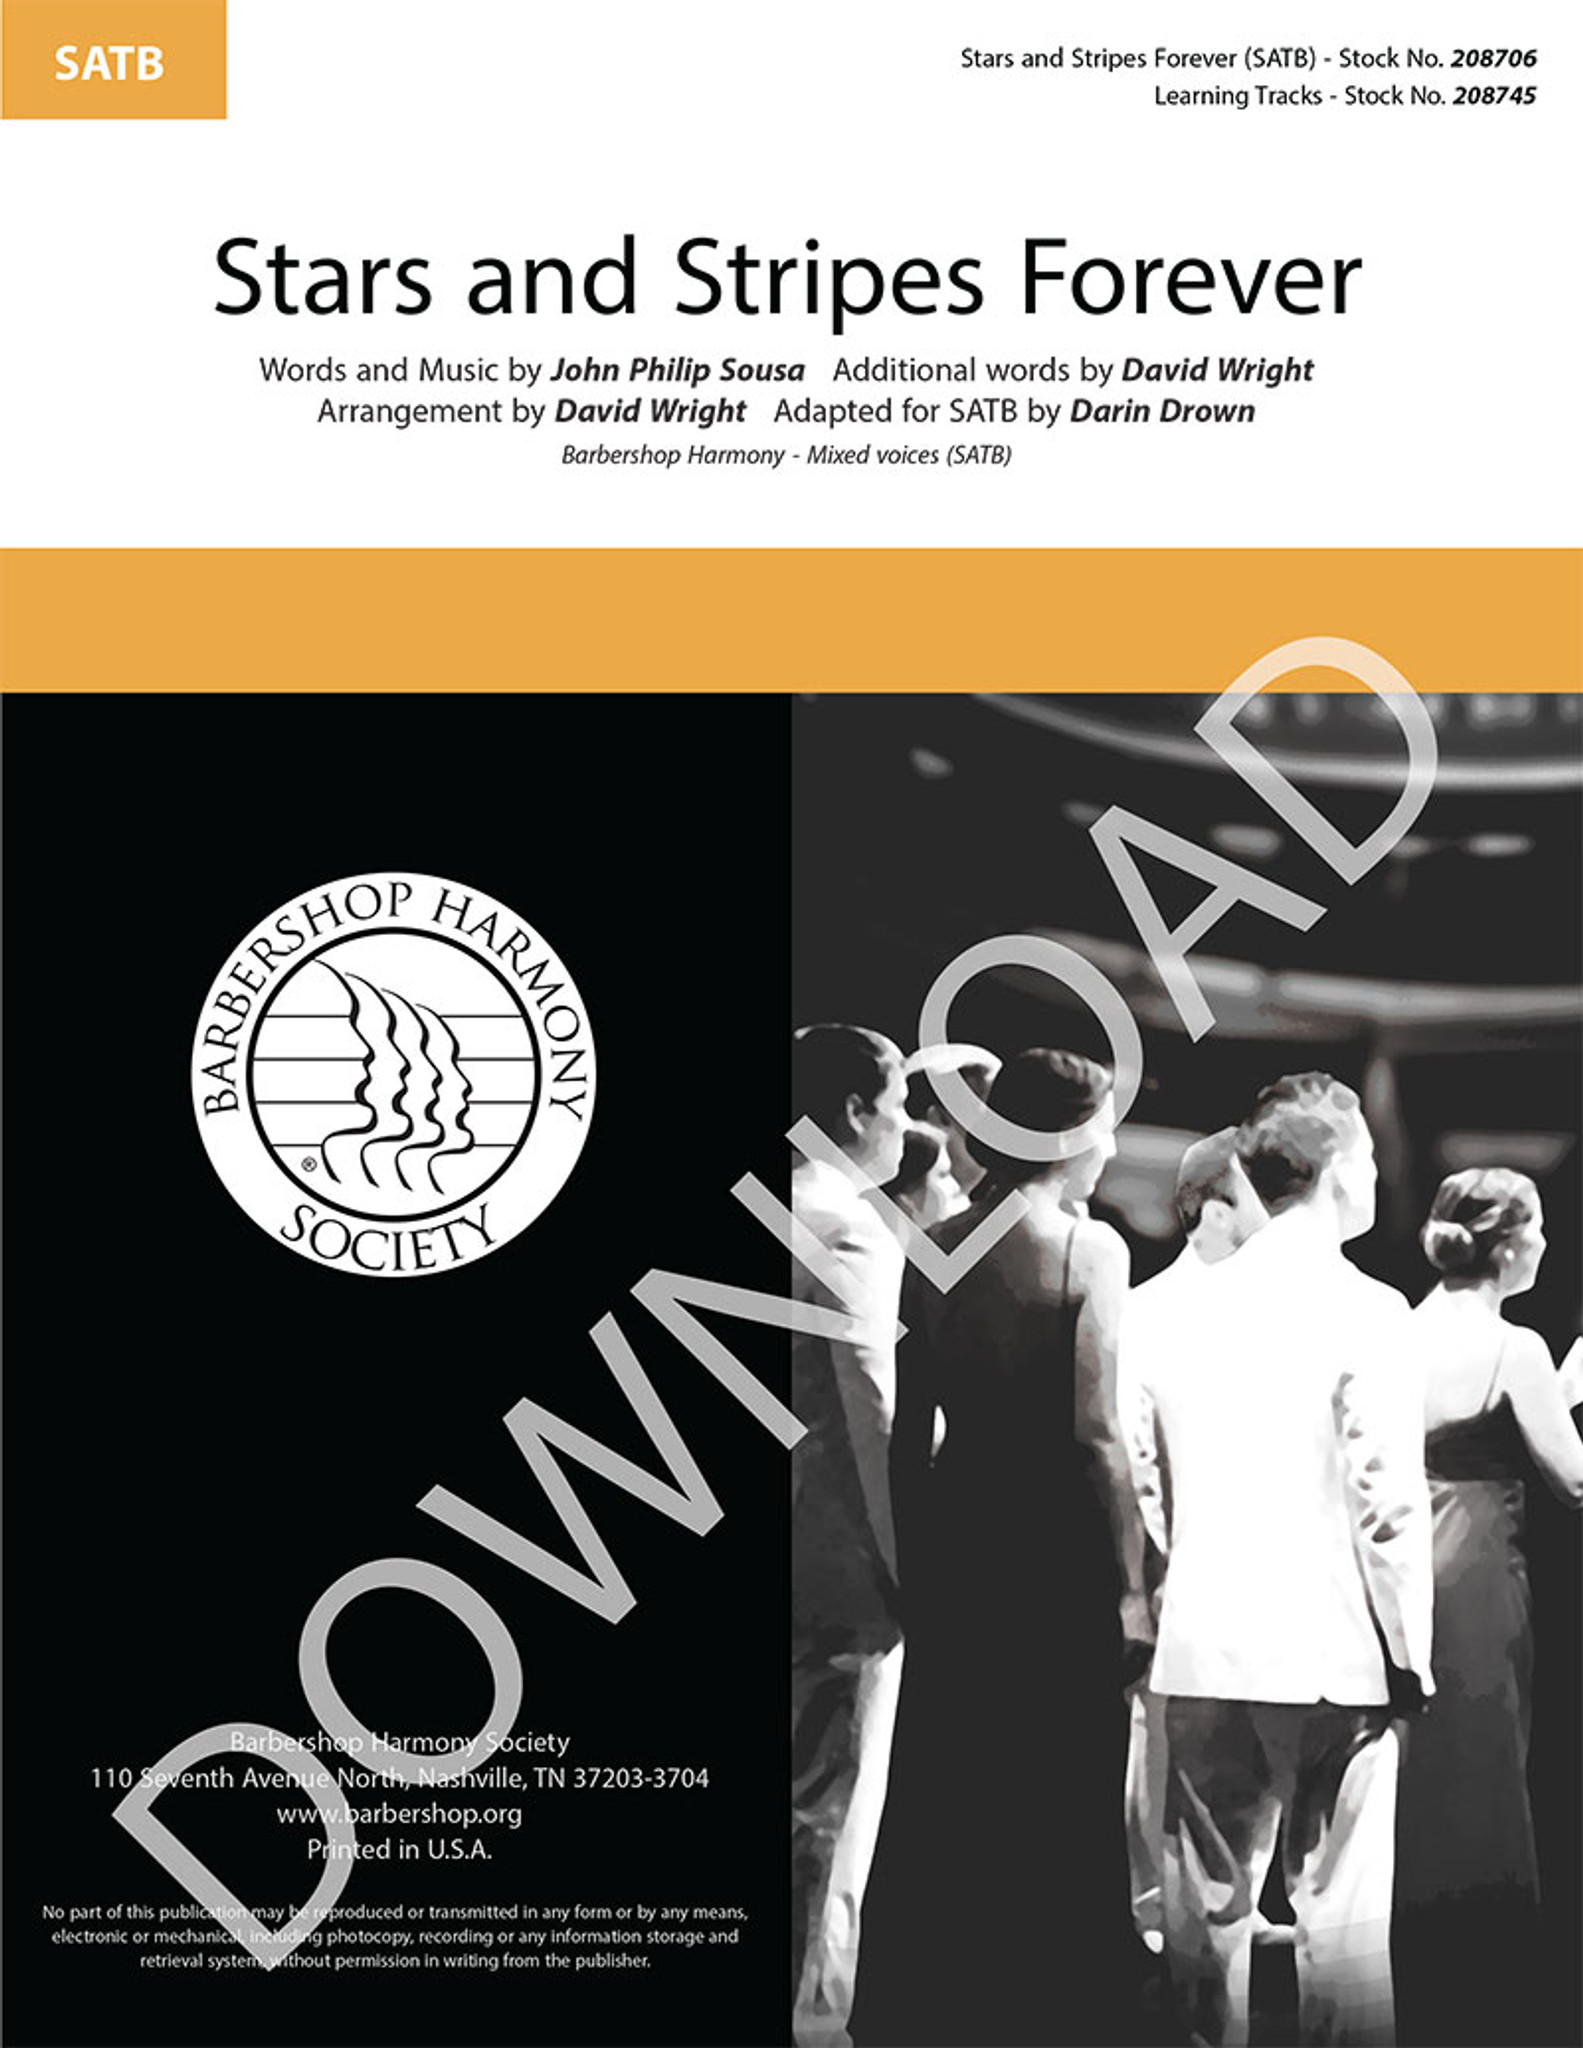 Stars and stripes forever: descant recorder, guitar sheet music.